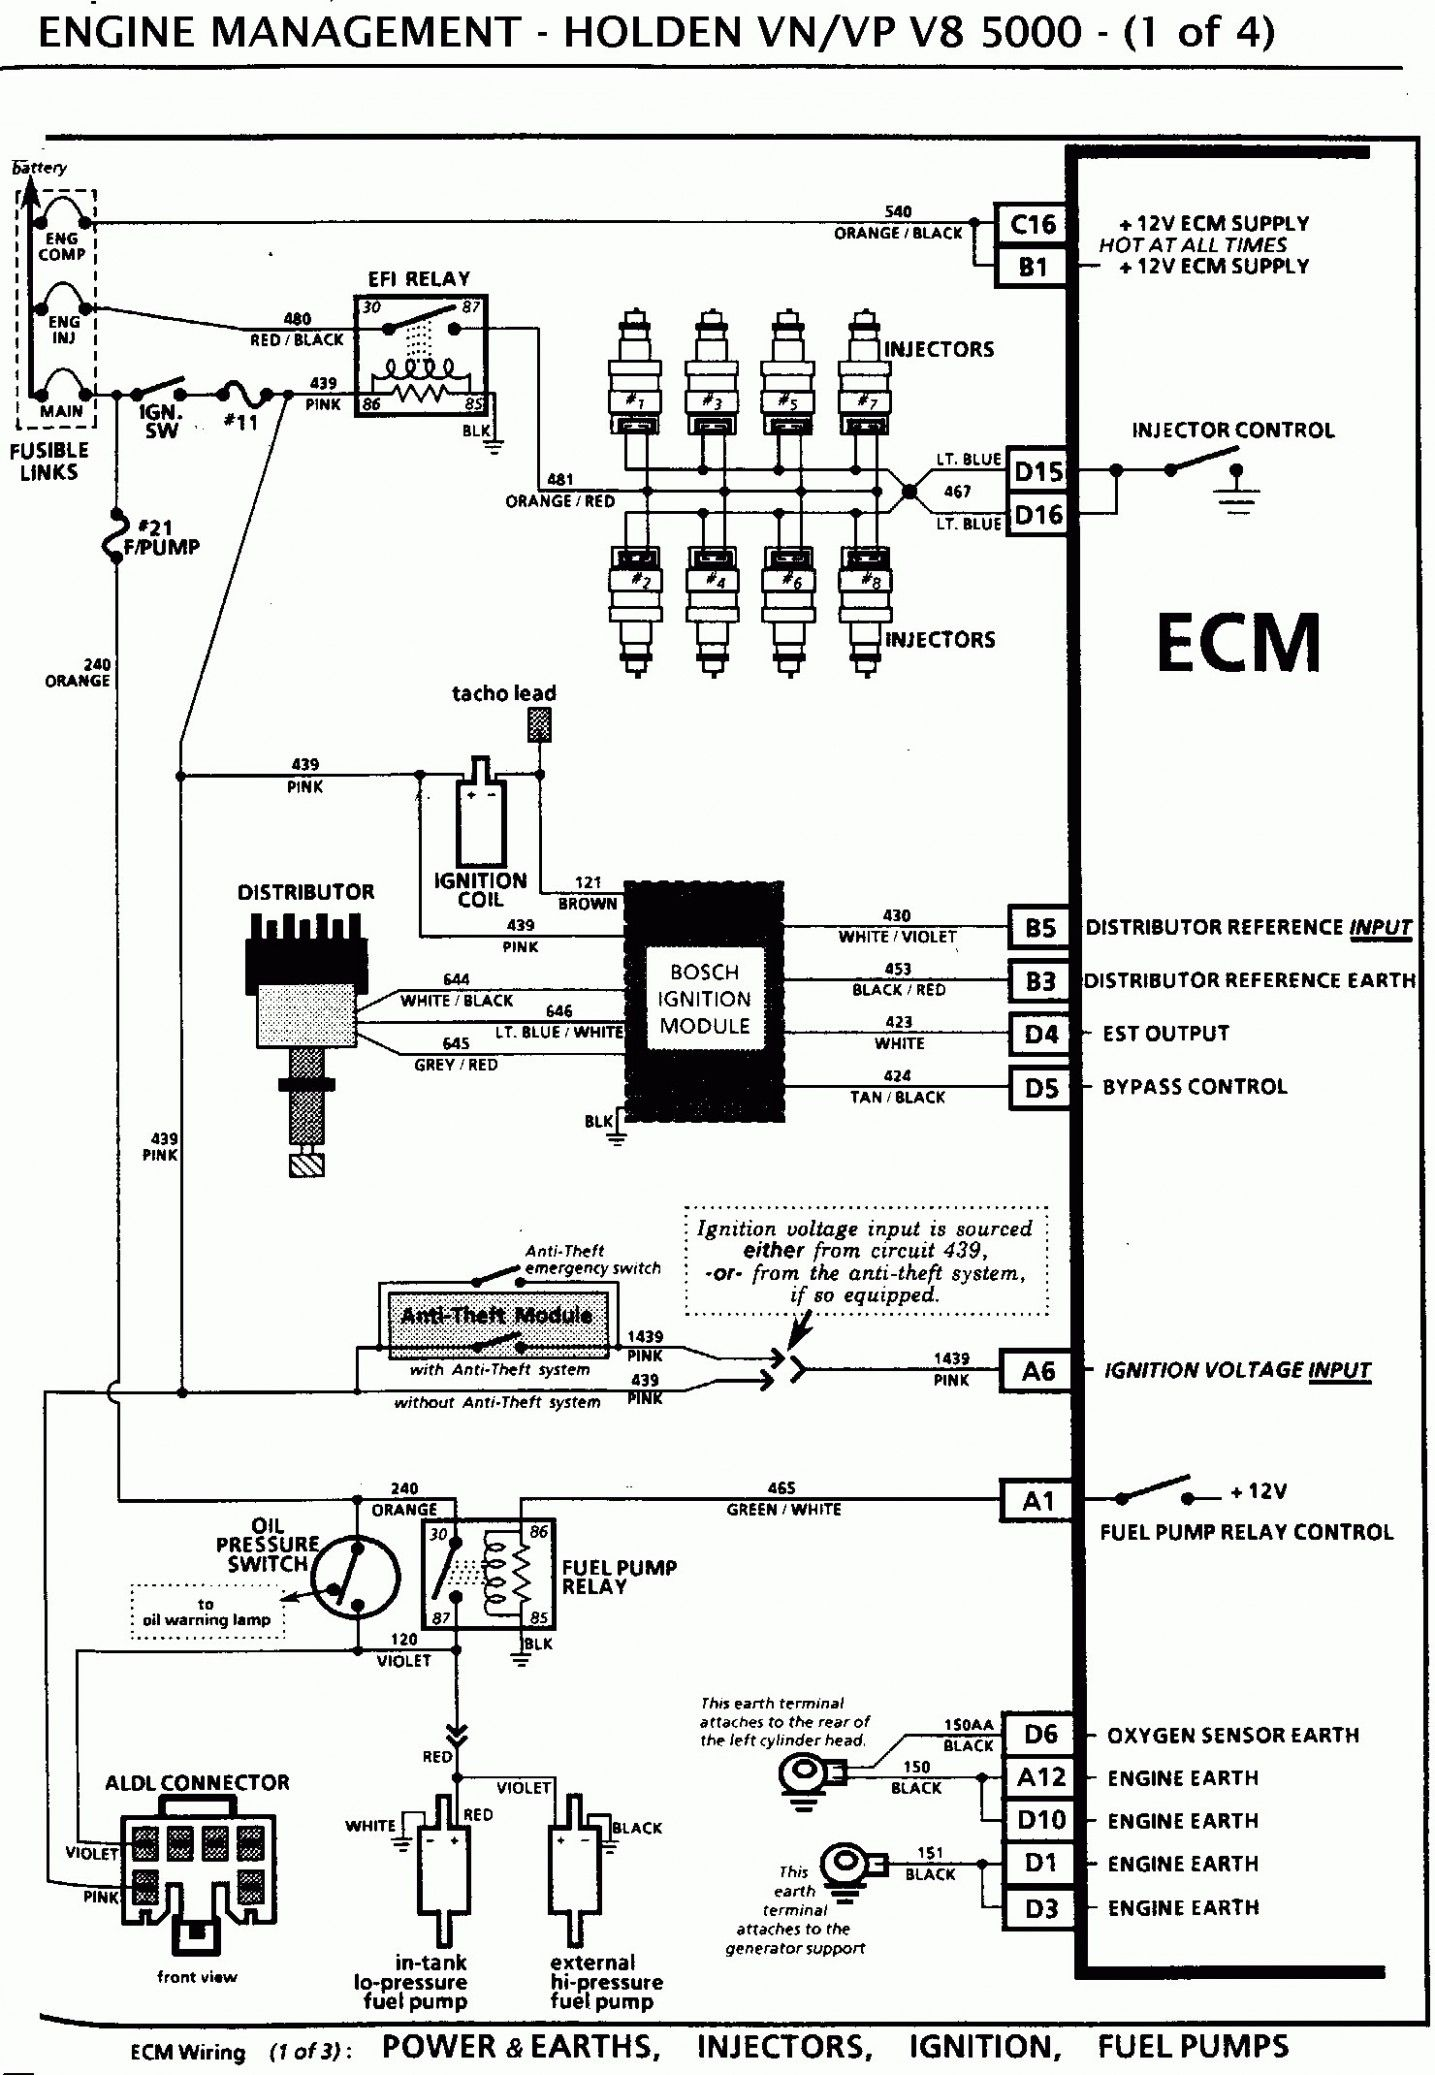 Vr V7 Engine Wiring Diagram Vr V7 Engine Wiring Diagram Vr V8